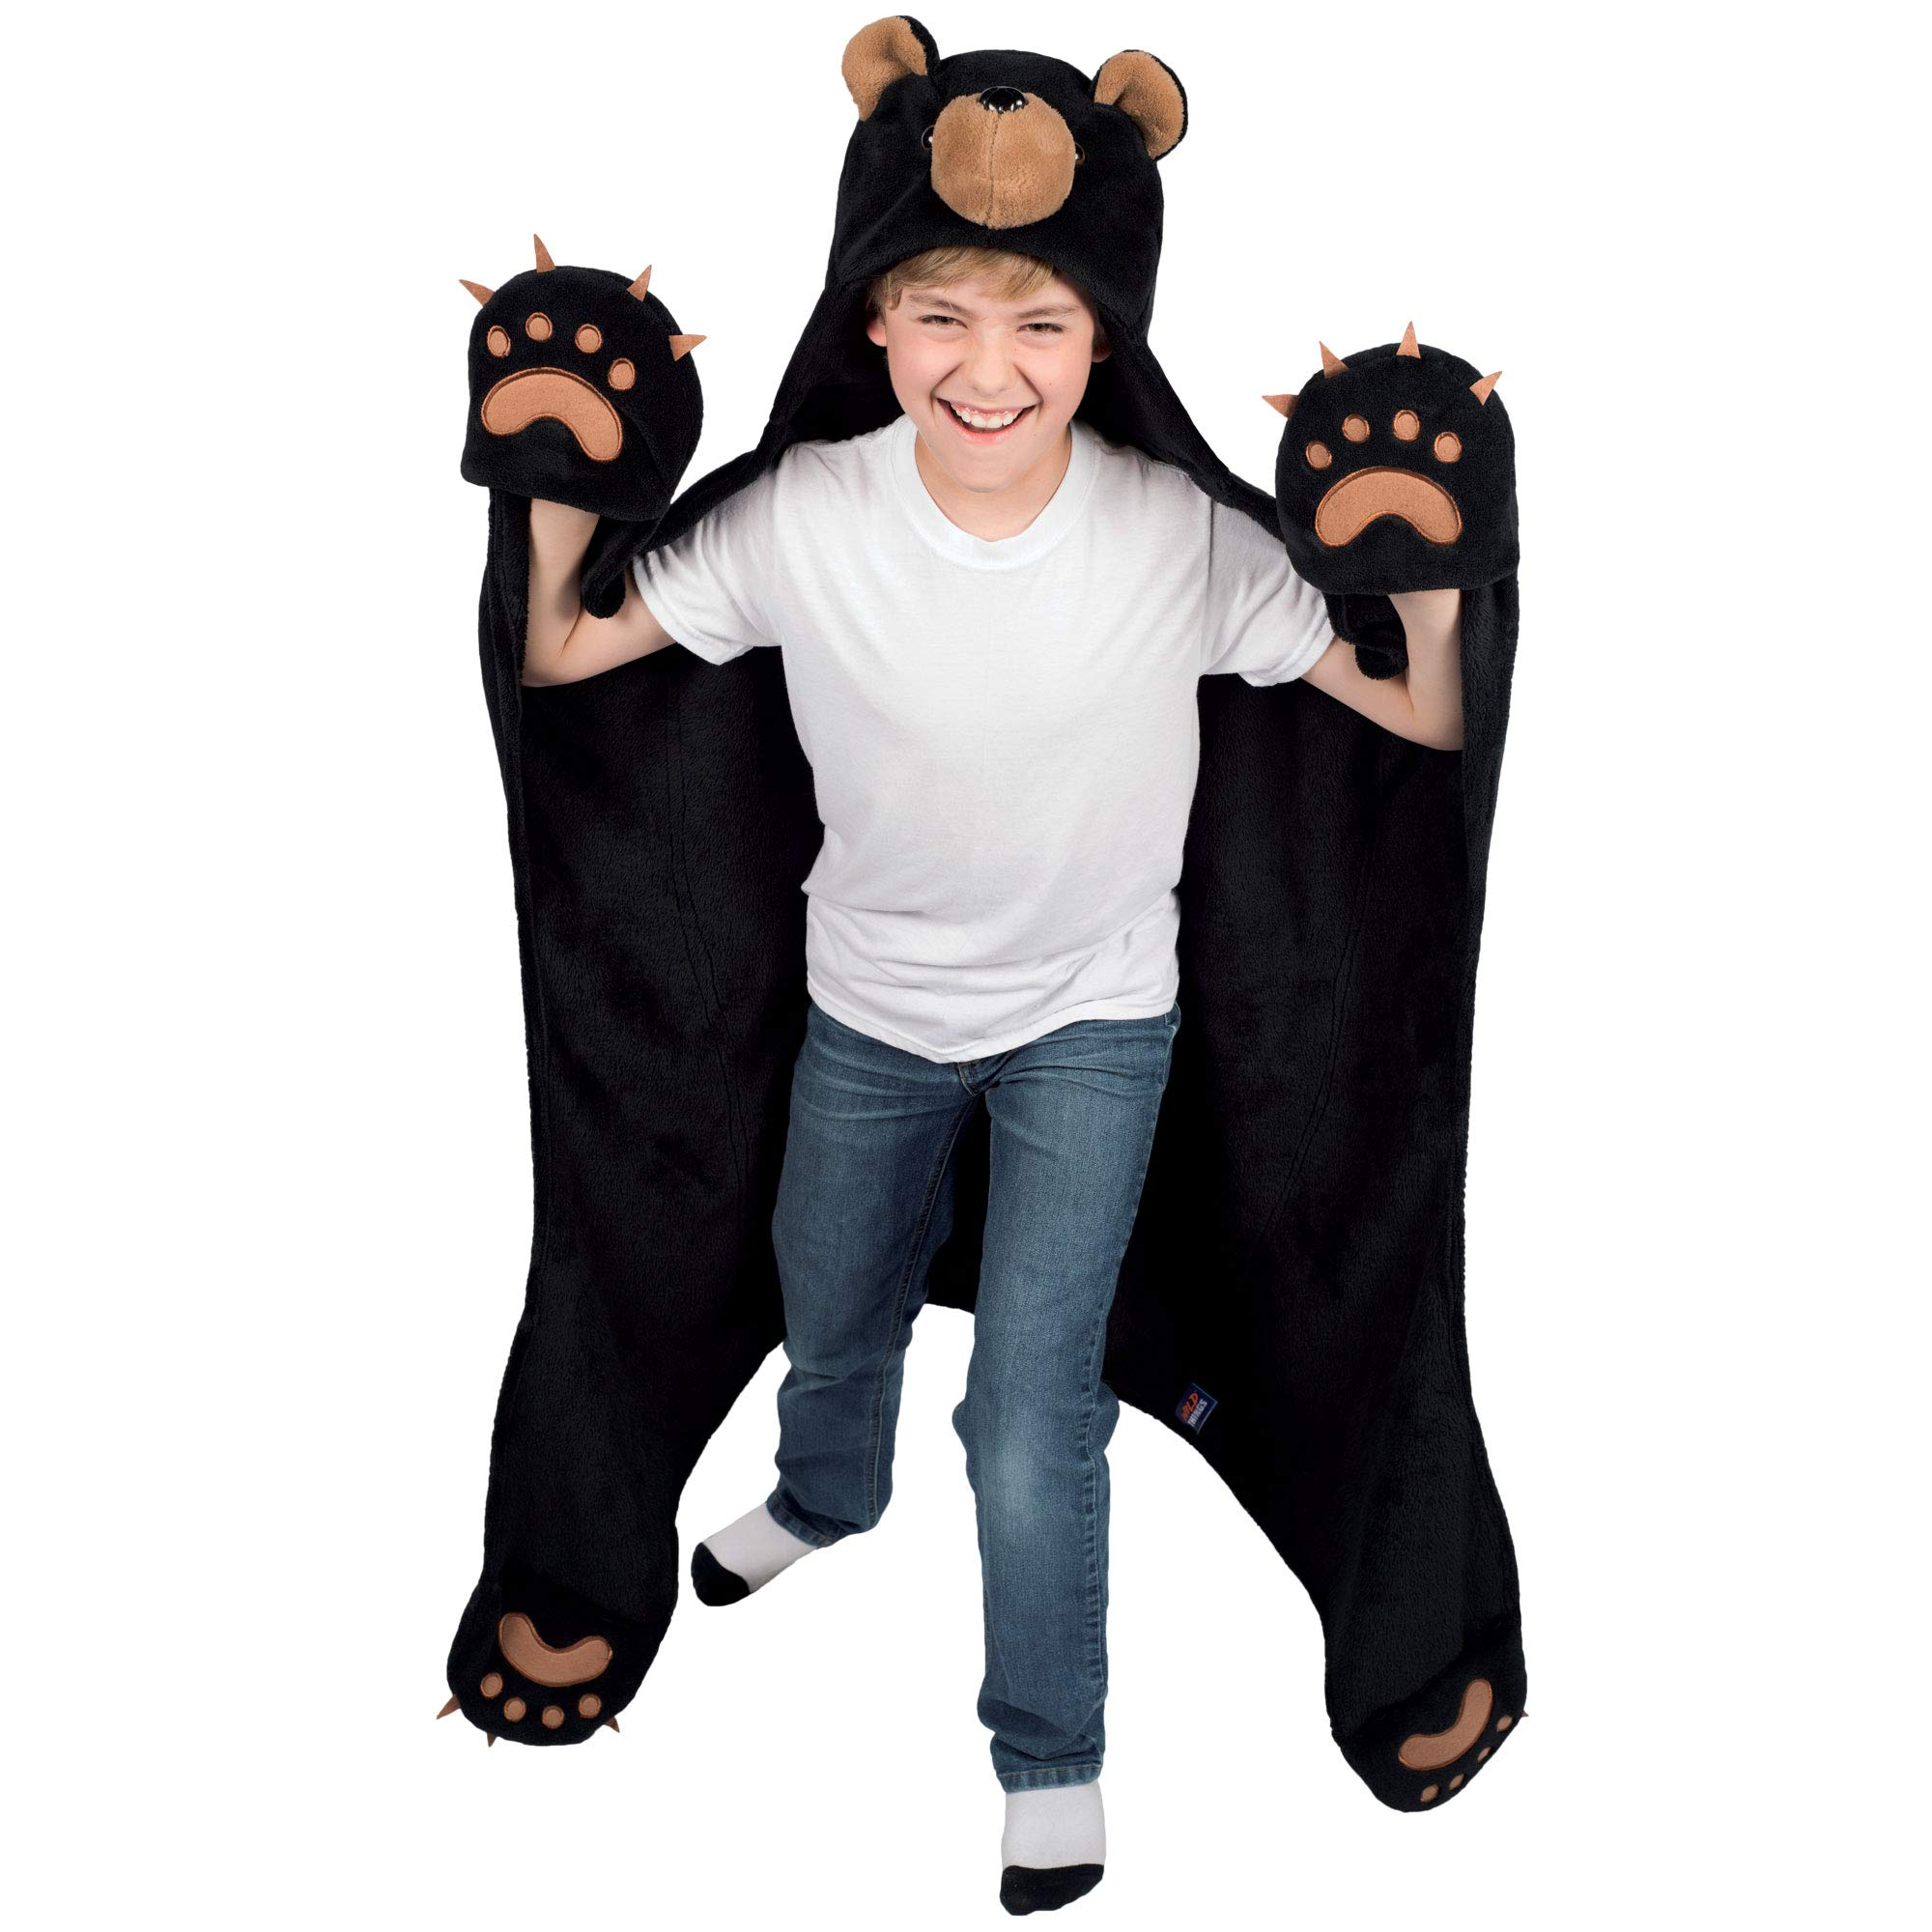 Cinder Black Bear Blanket for Boys and All Kids - Wearable and Hooded Fleece Blankets - Gifts by Wild Things by Fin Fun